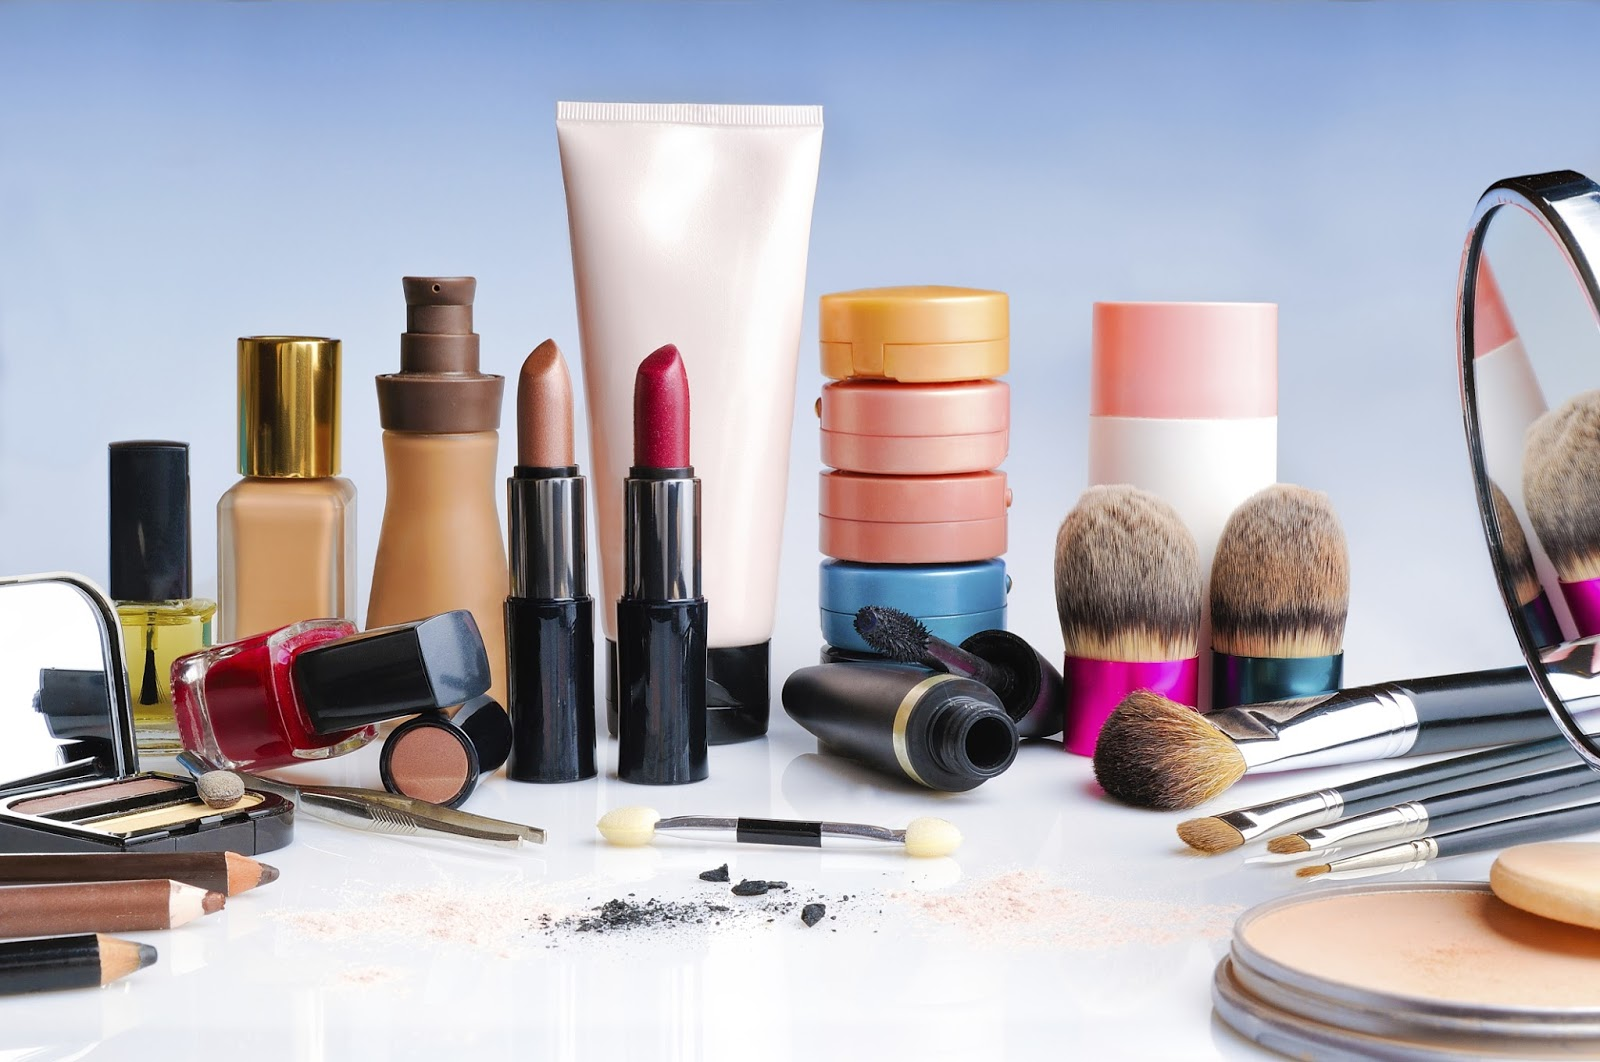 Get The Best in Class Skin Care And Makeup Product at an Effective Cost